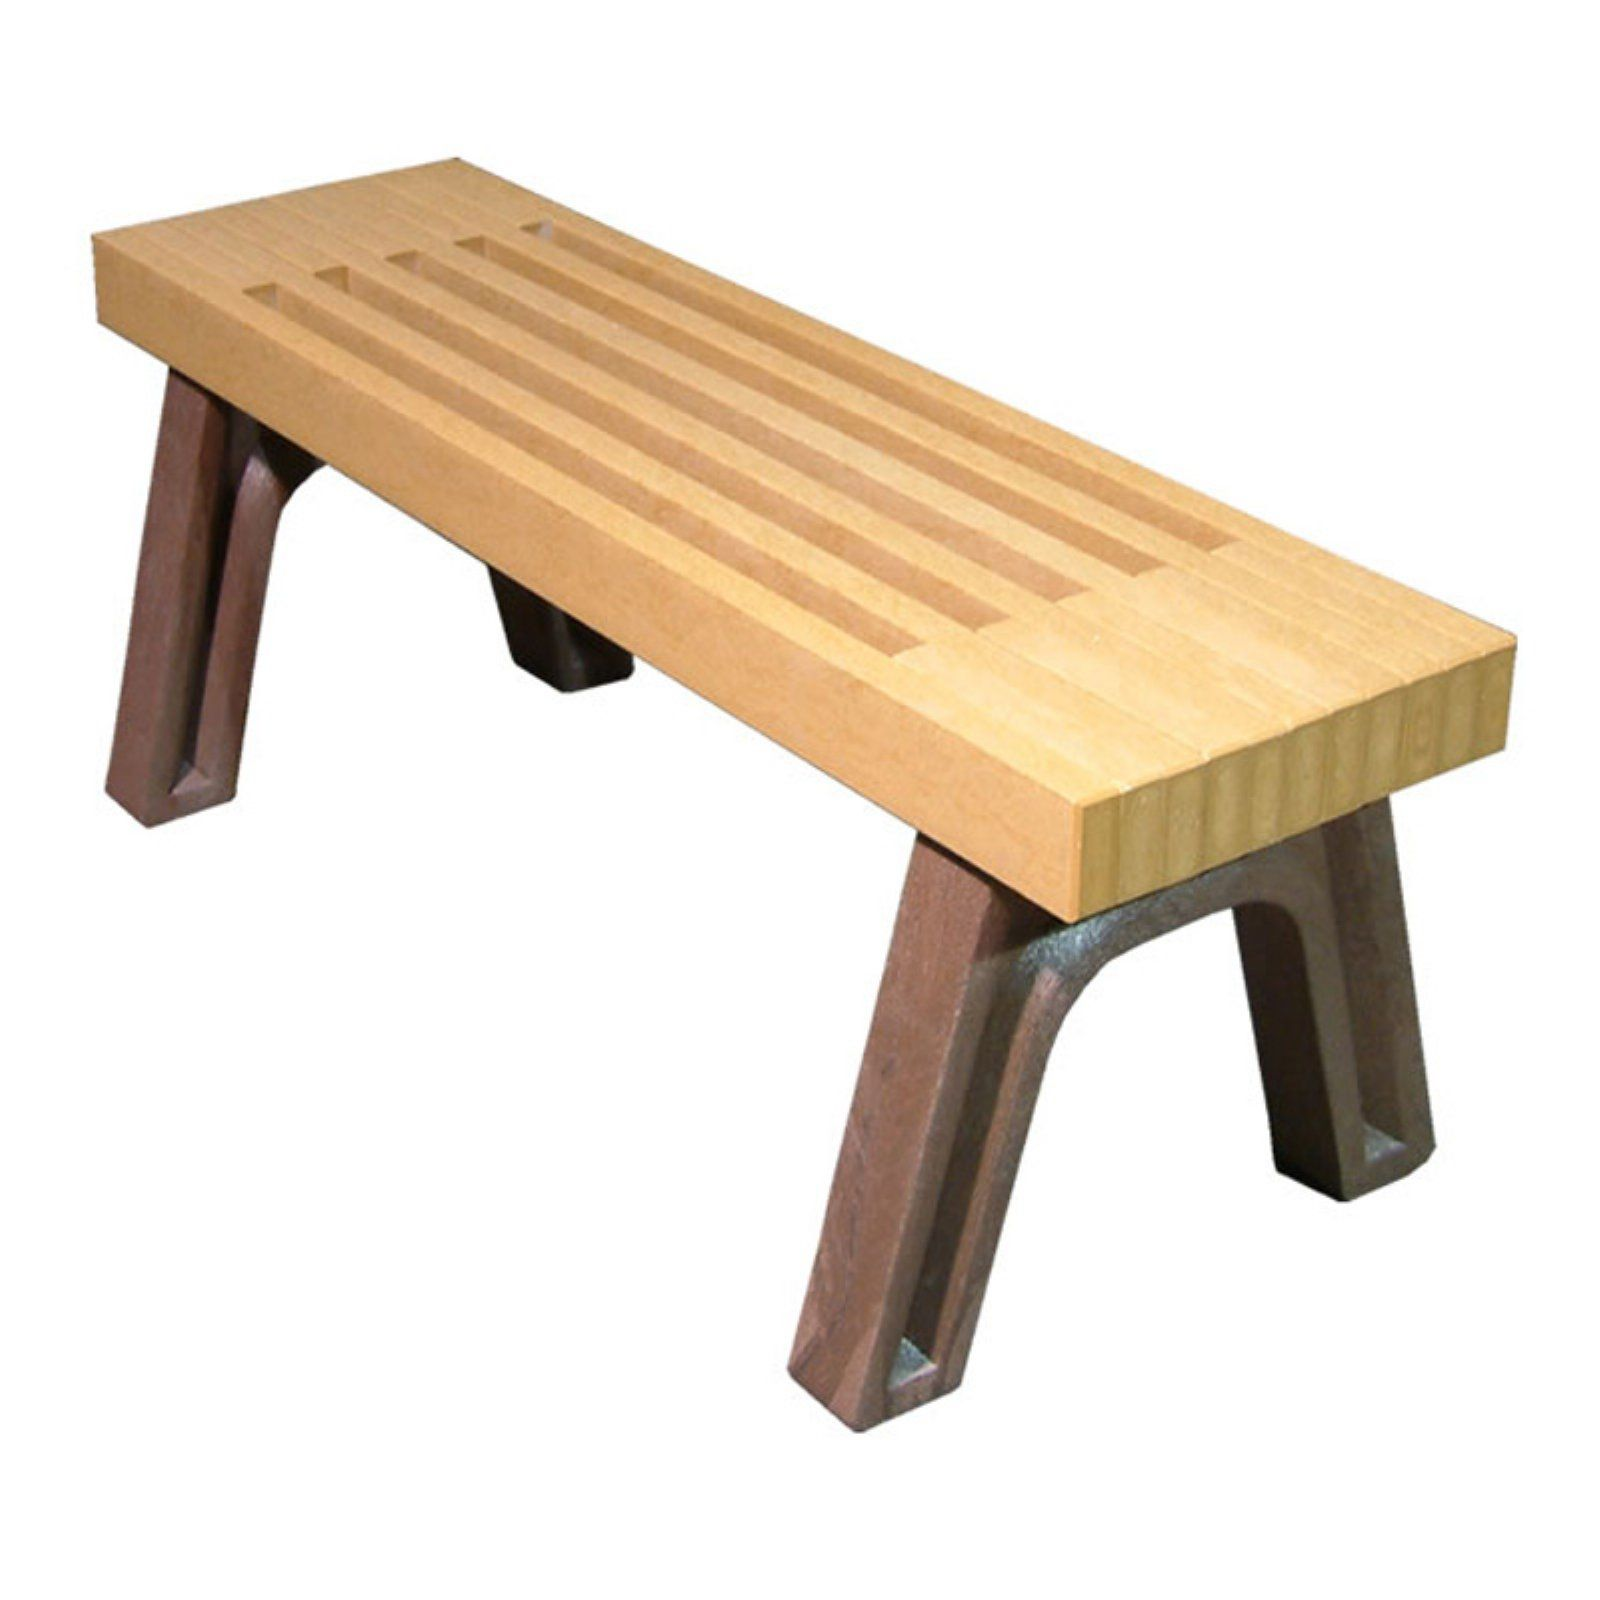 Pleasing Outdoor Polly Products Elite Recycled Plastic Flat Bench Gmtry Best Dining Table And Chair Ideas Images Gmtryco